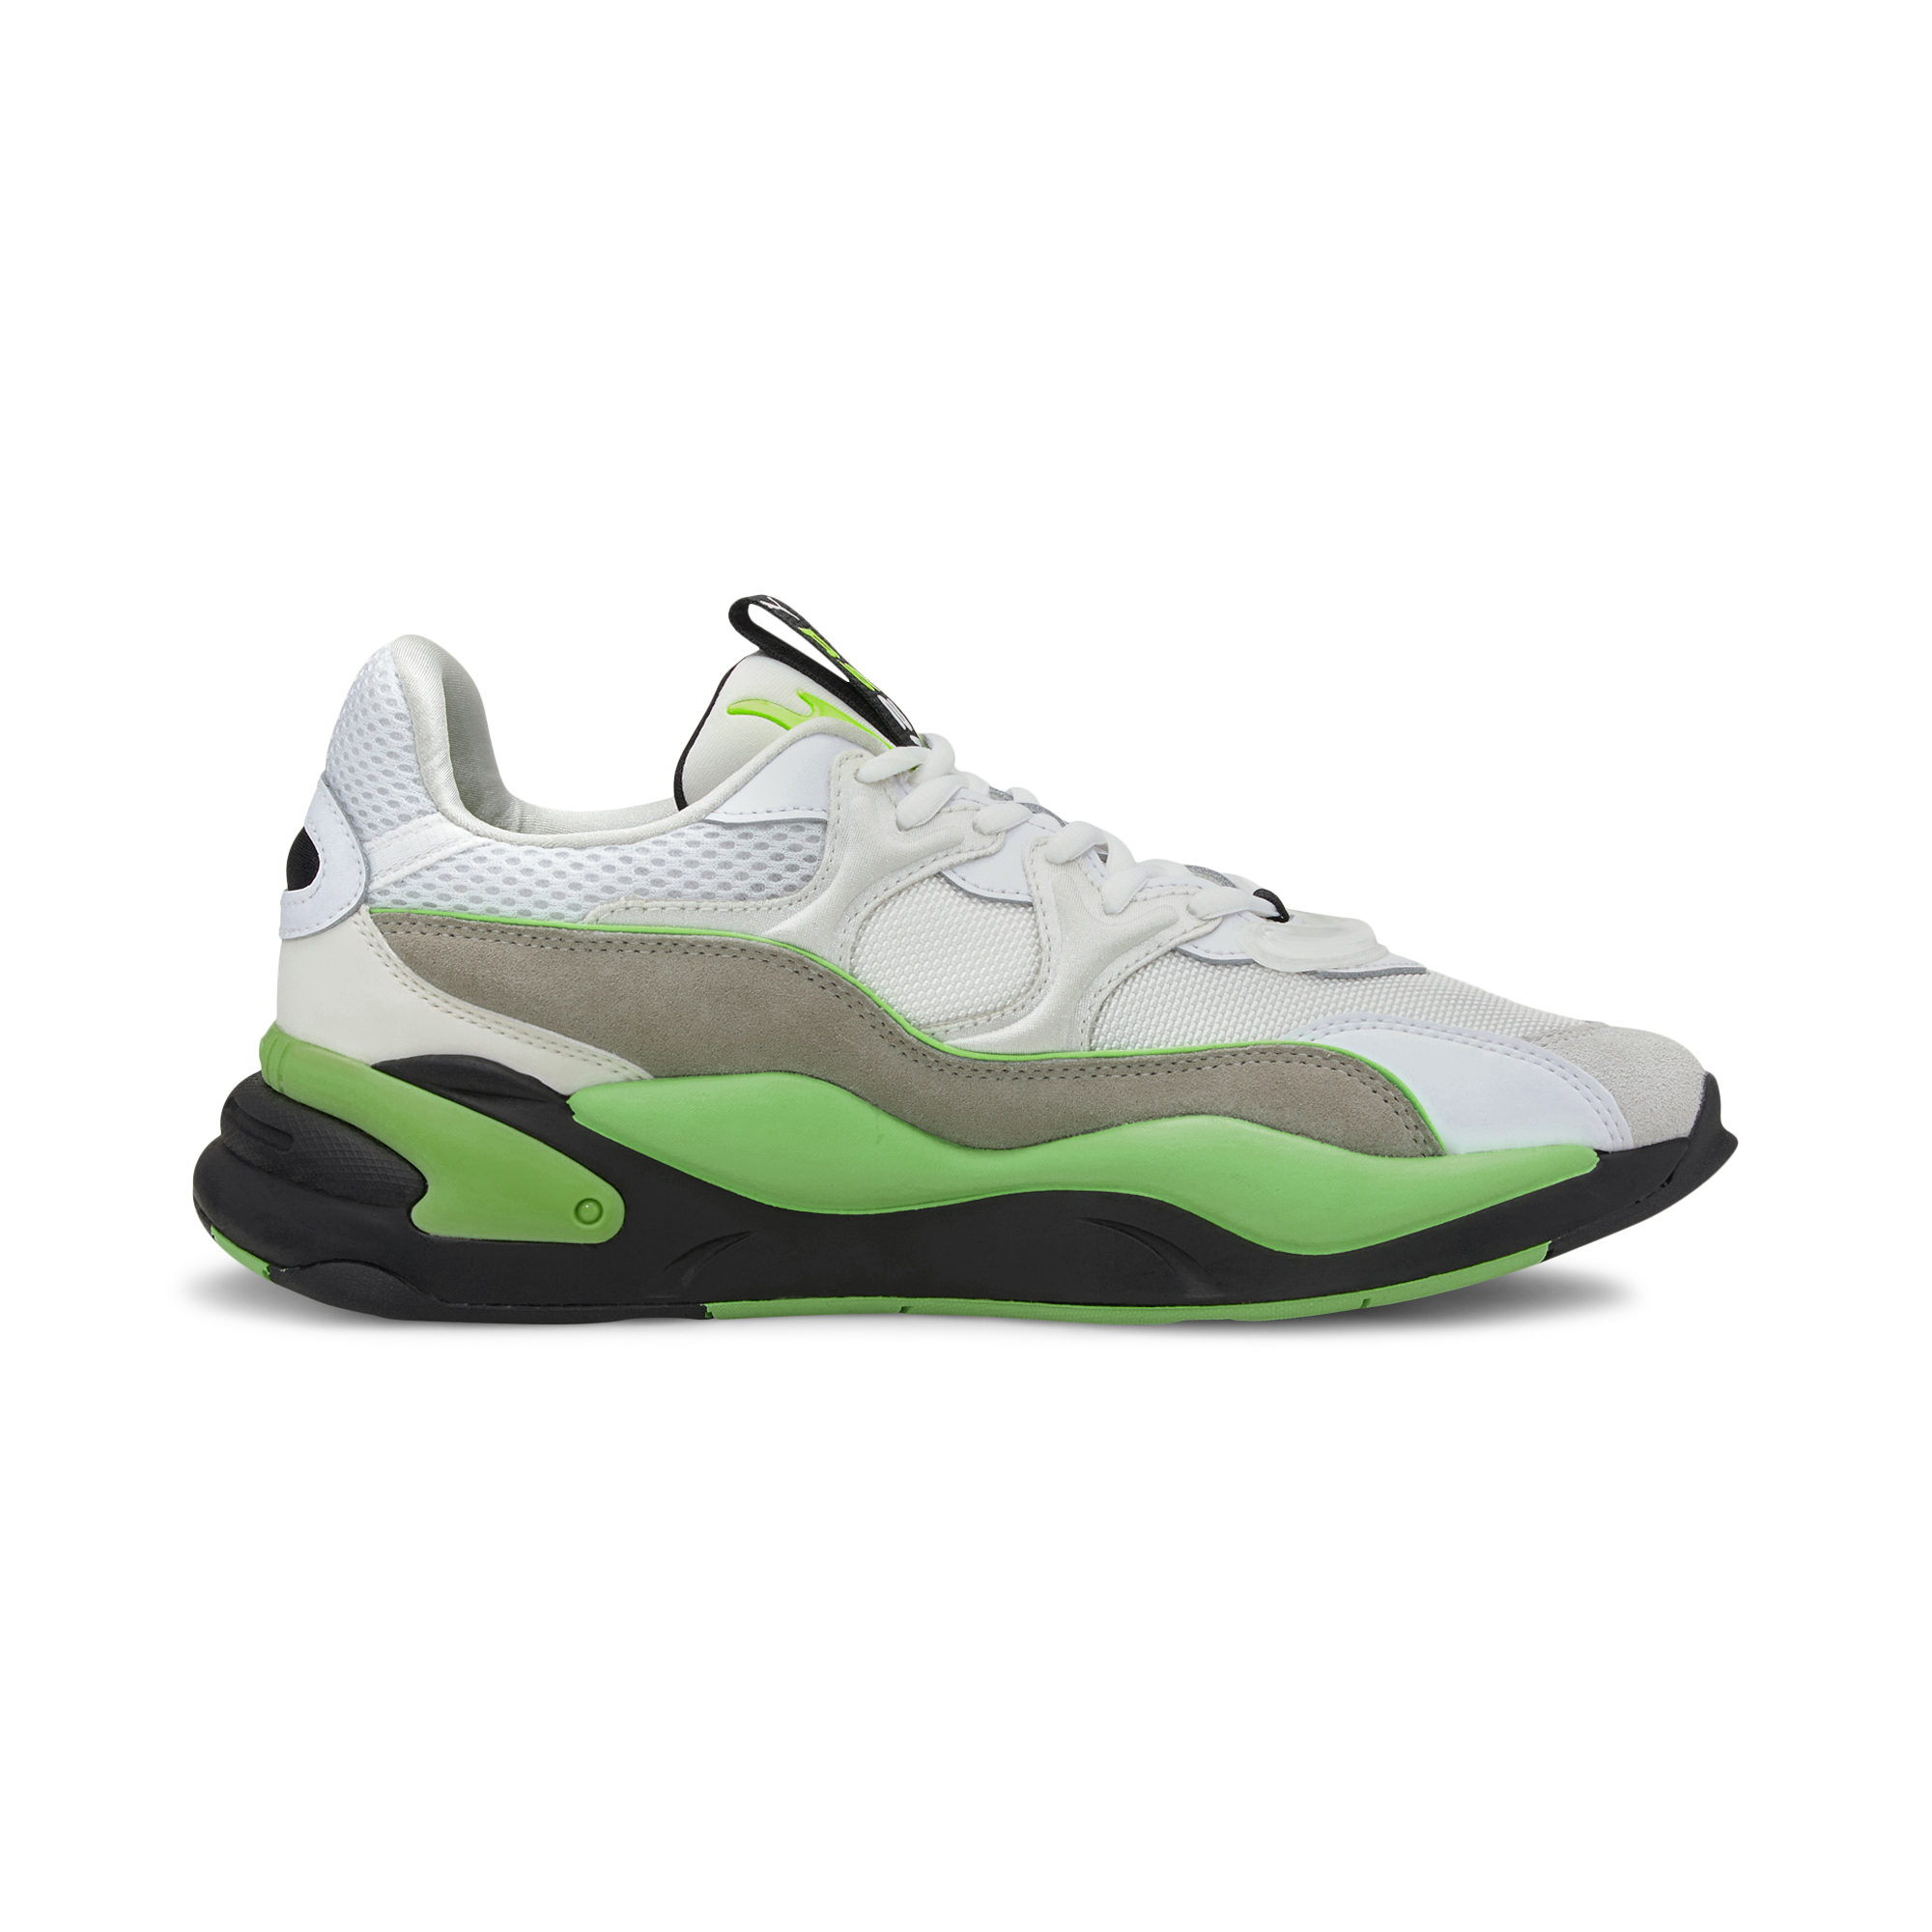 Puma RS-2K Messaging Puma White-Elektro Green